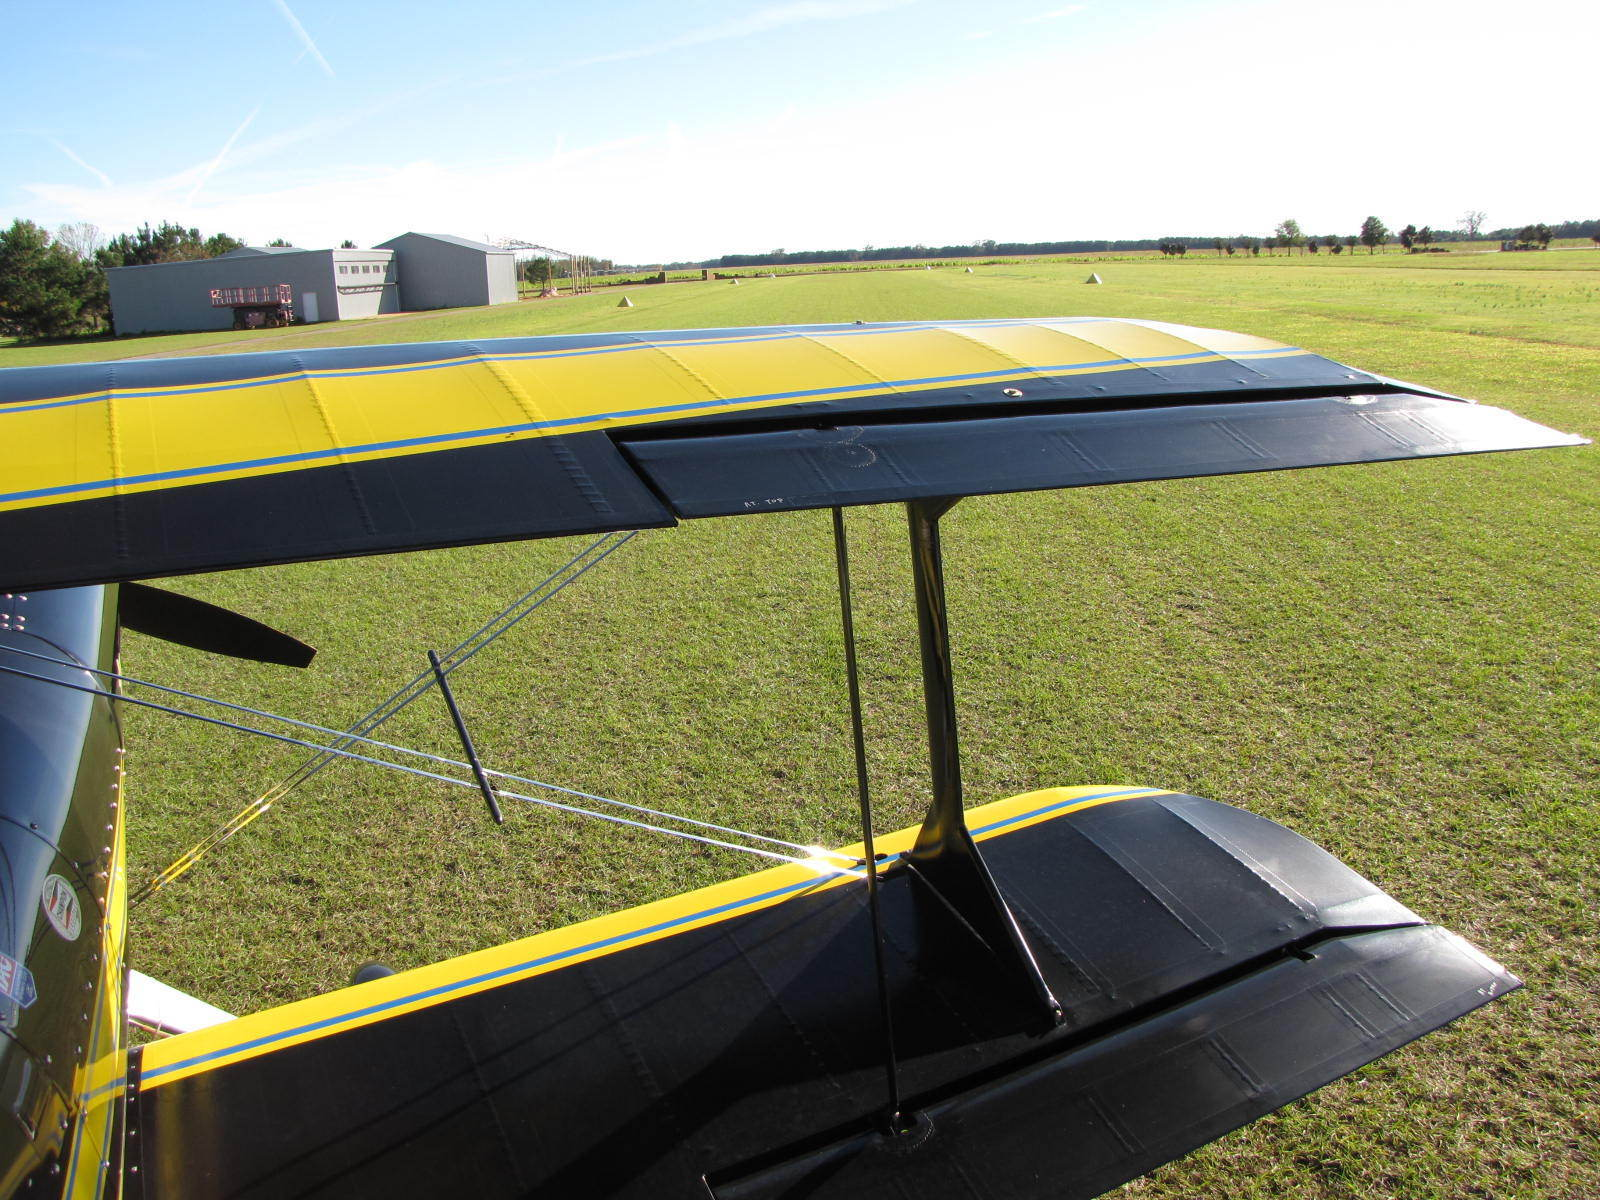 2002 Pitts S1-11B